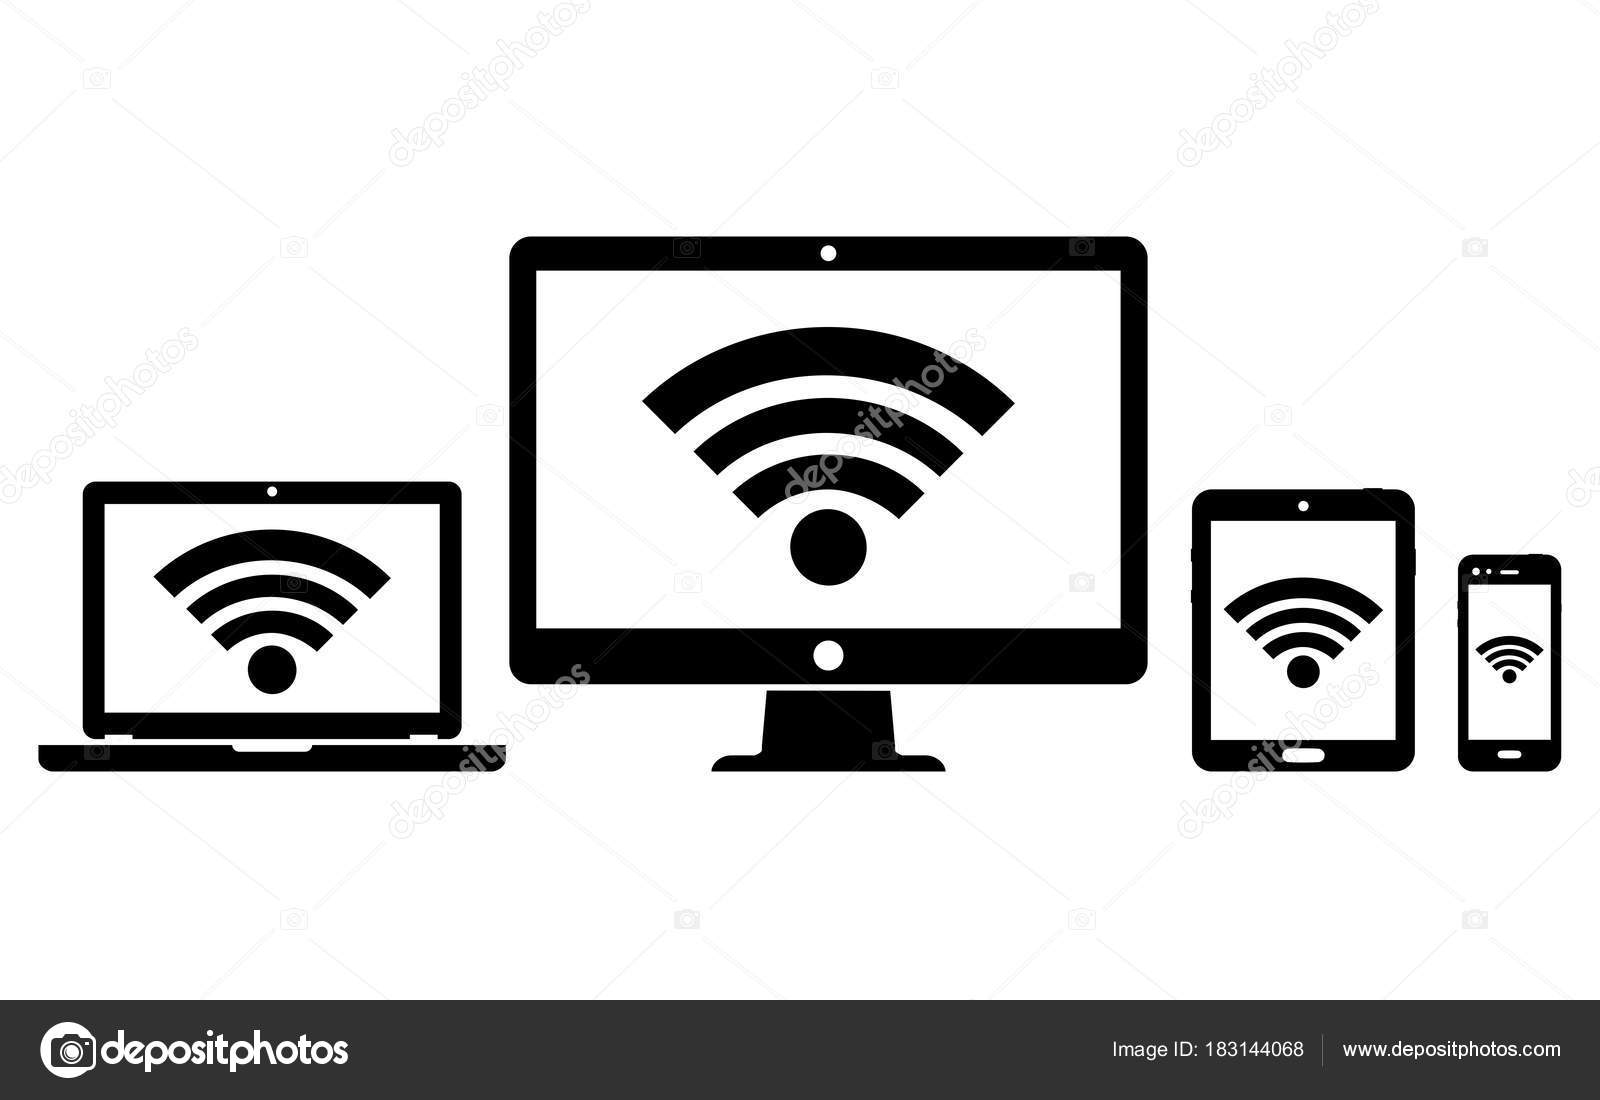 Digital Devices With Wifi Internet Connection Symbol